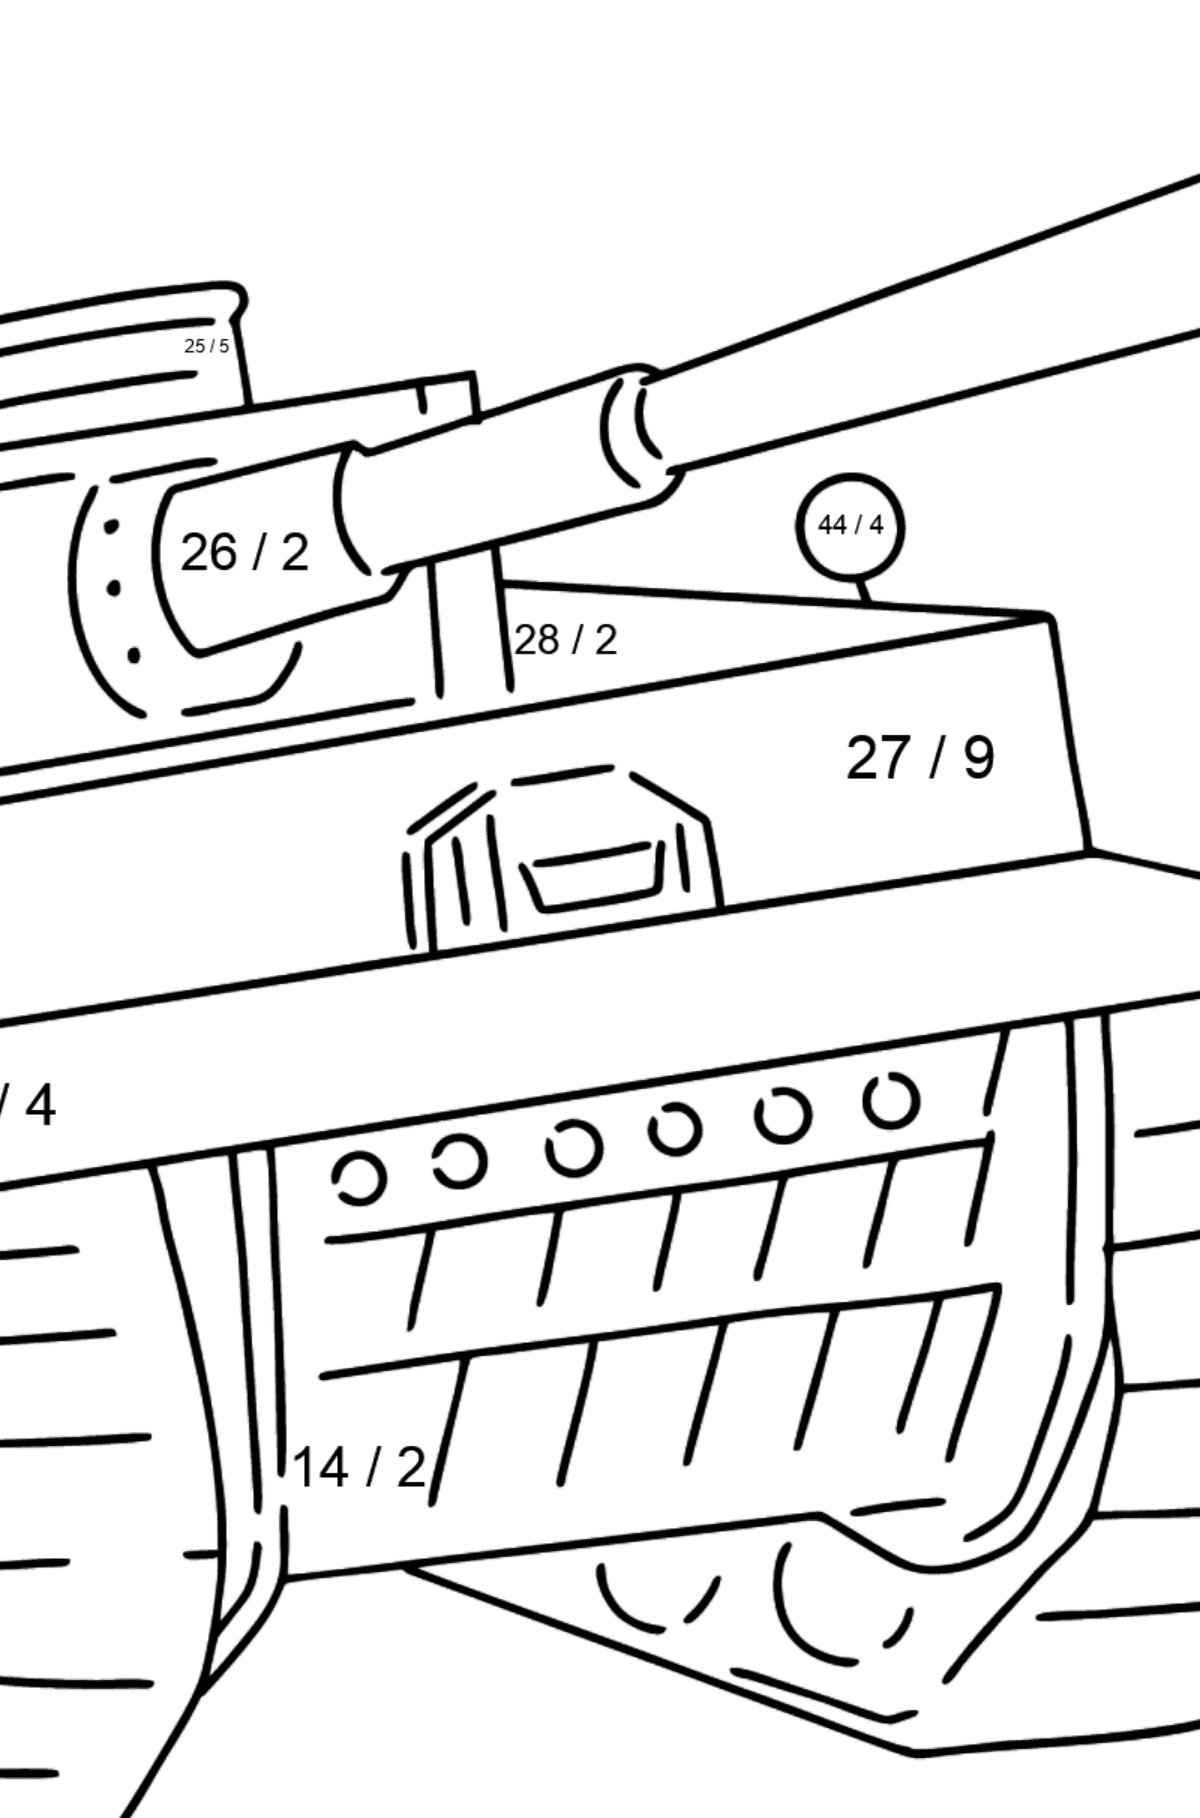 Tank Panther coloring page - Math Coloring - Division for Kids